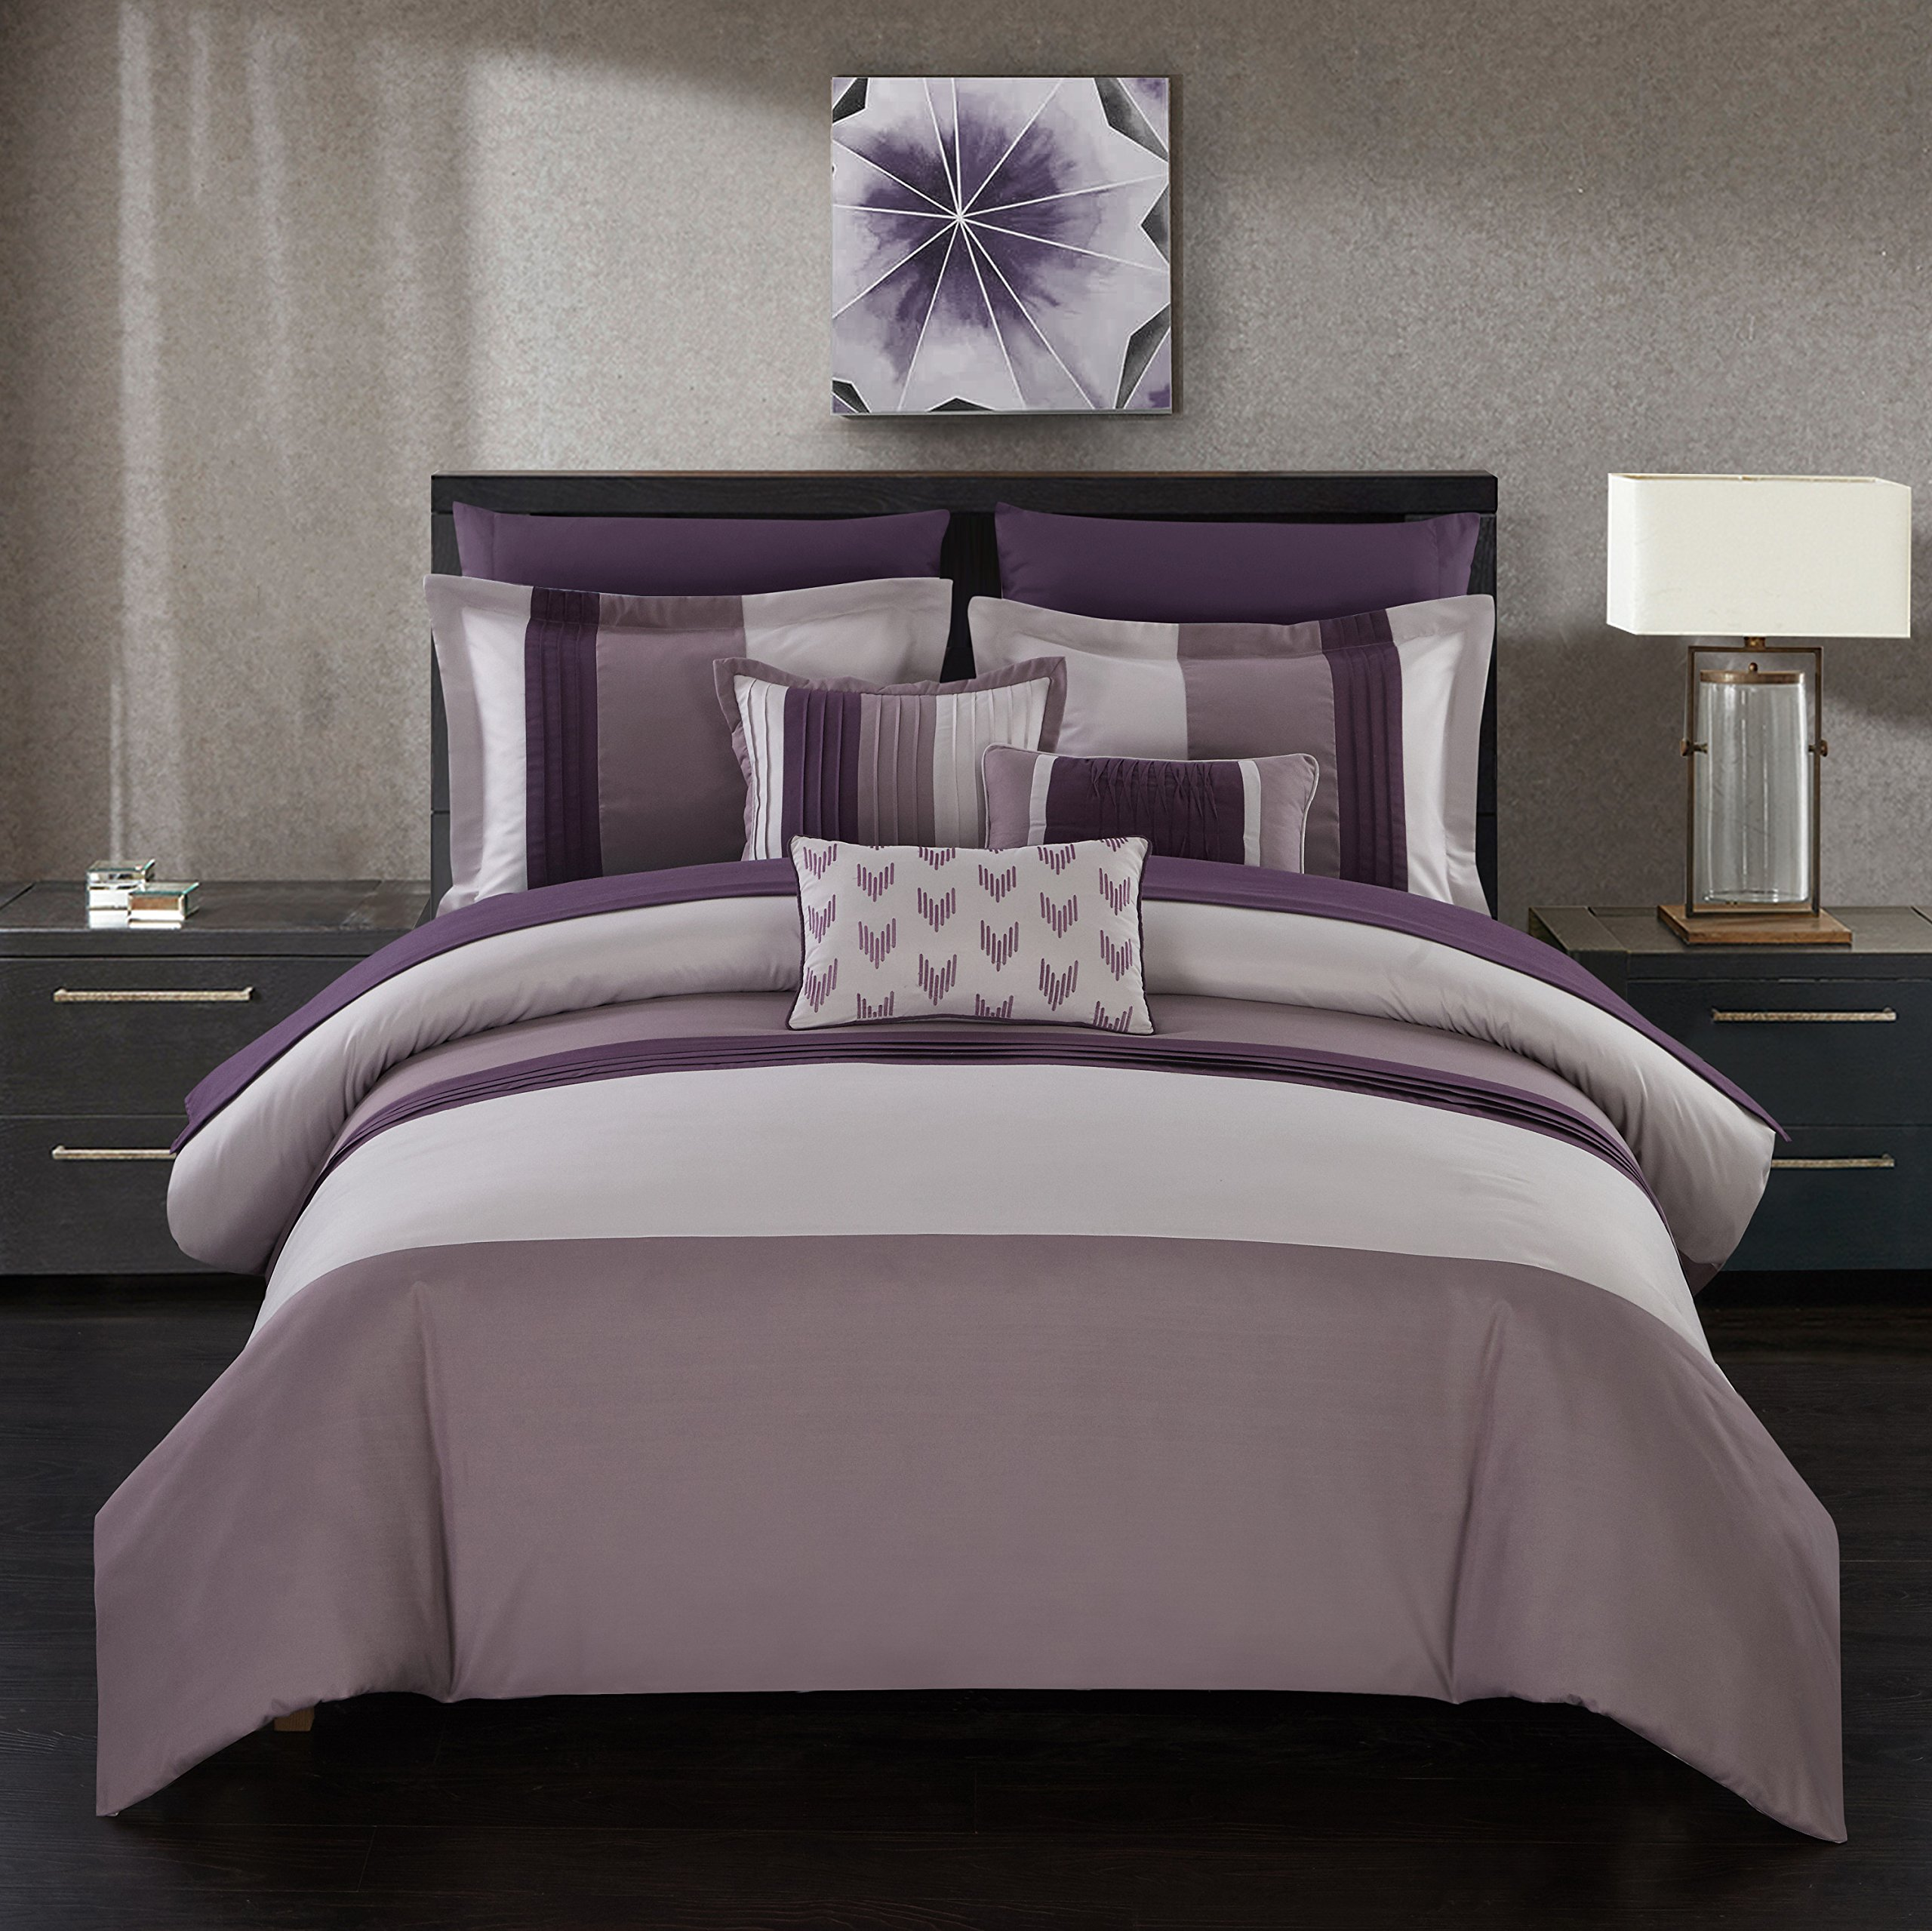 Chic Home Izar 10 Piece Comforter Set Color Block Ruffled Bed in a Bag Bedding - Decorative Pillows Shams Included, Queen Plum